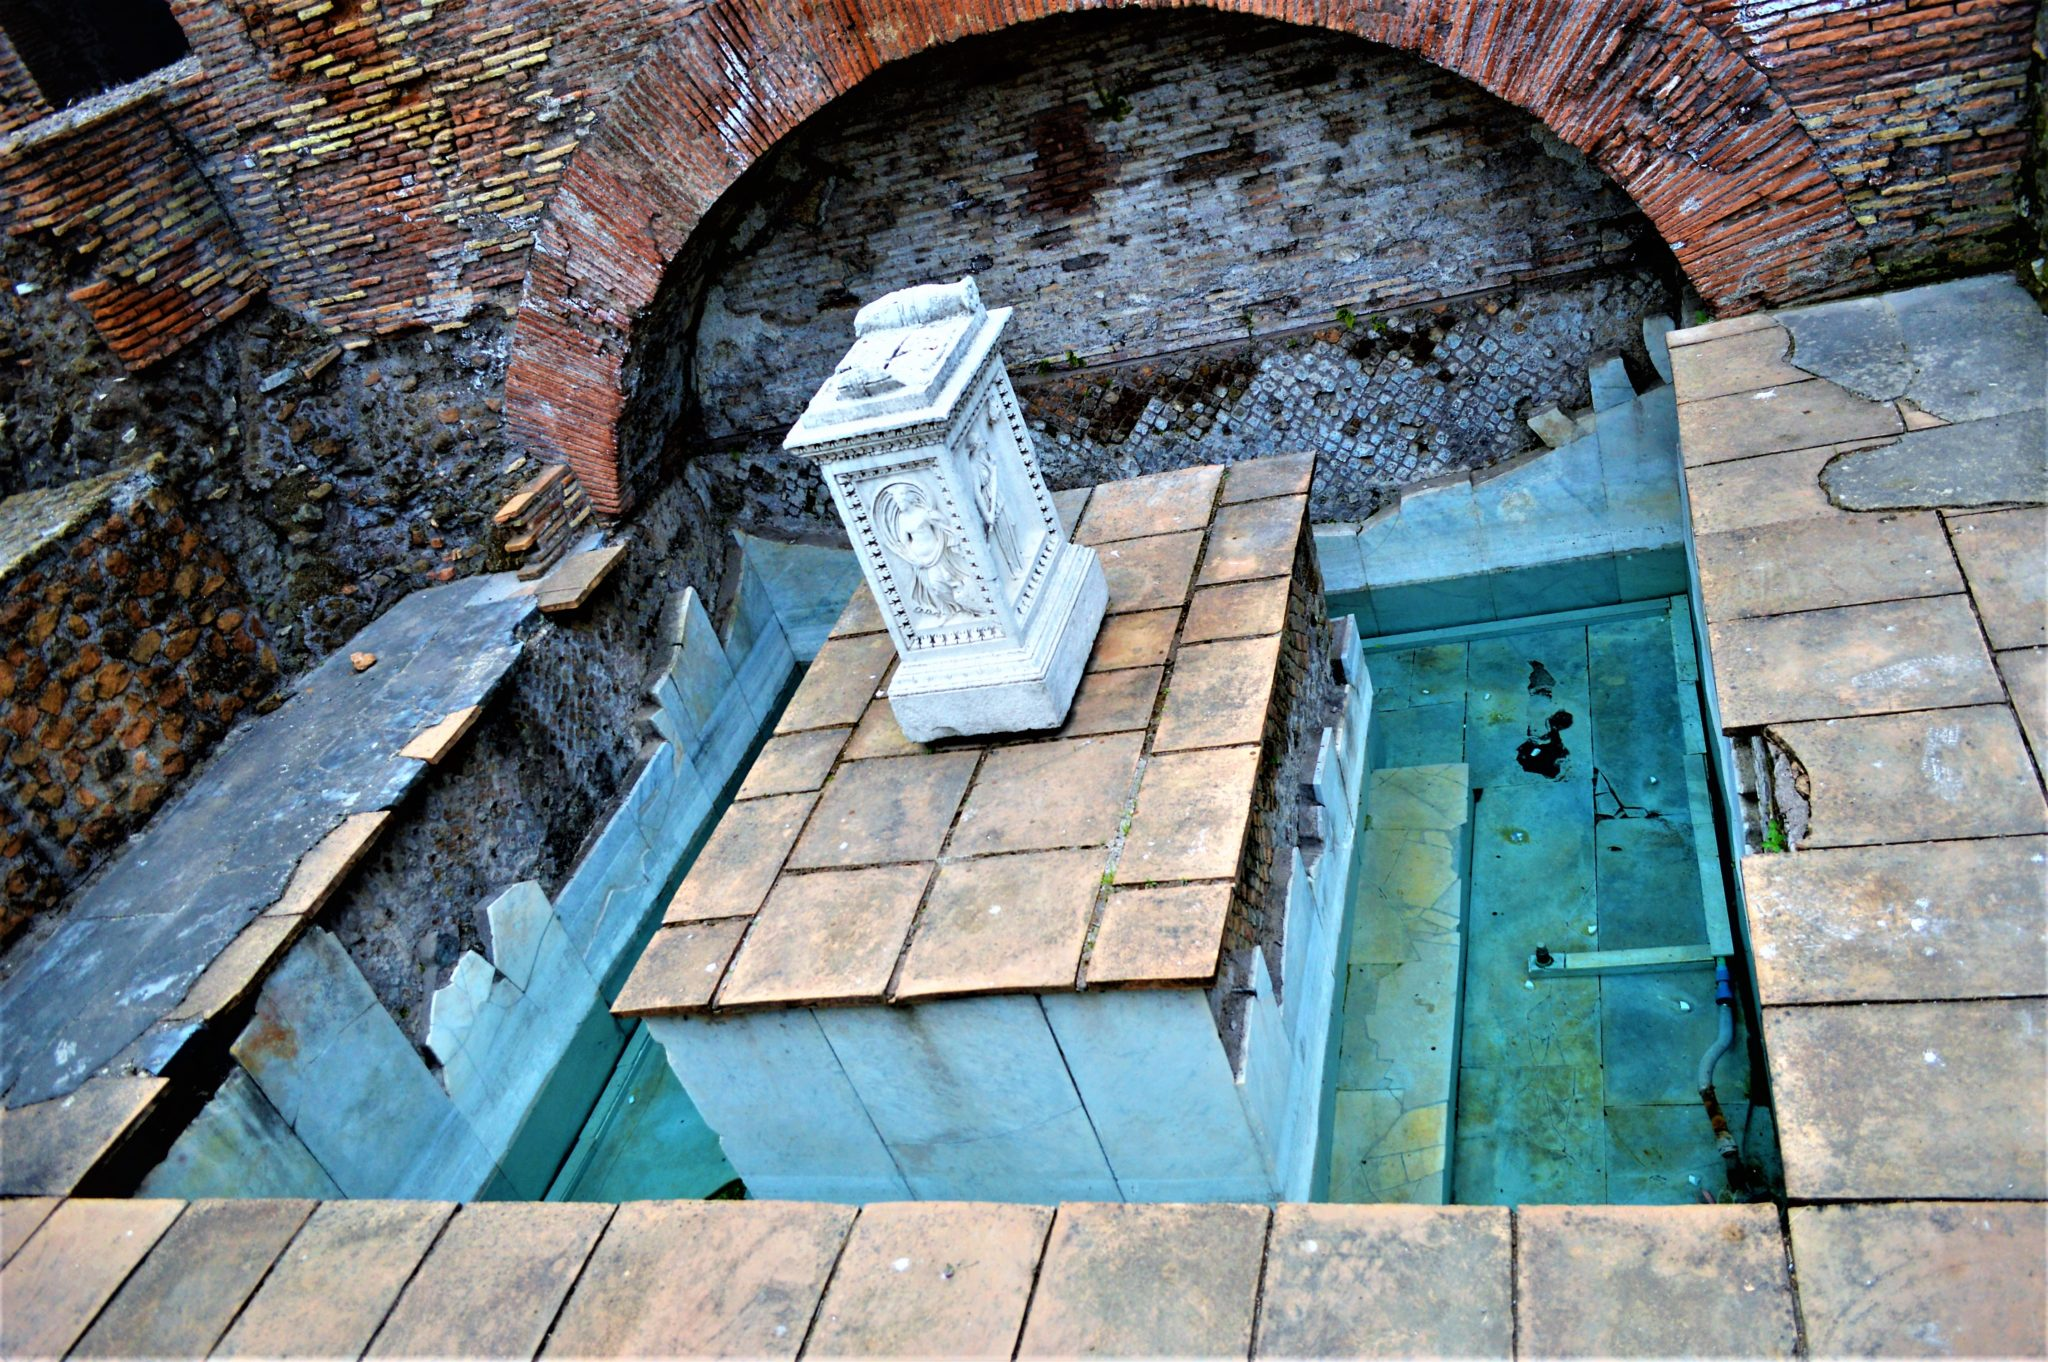 Roman bath, Roman Forum, things to do in Rome, Italy